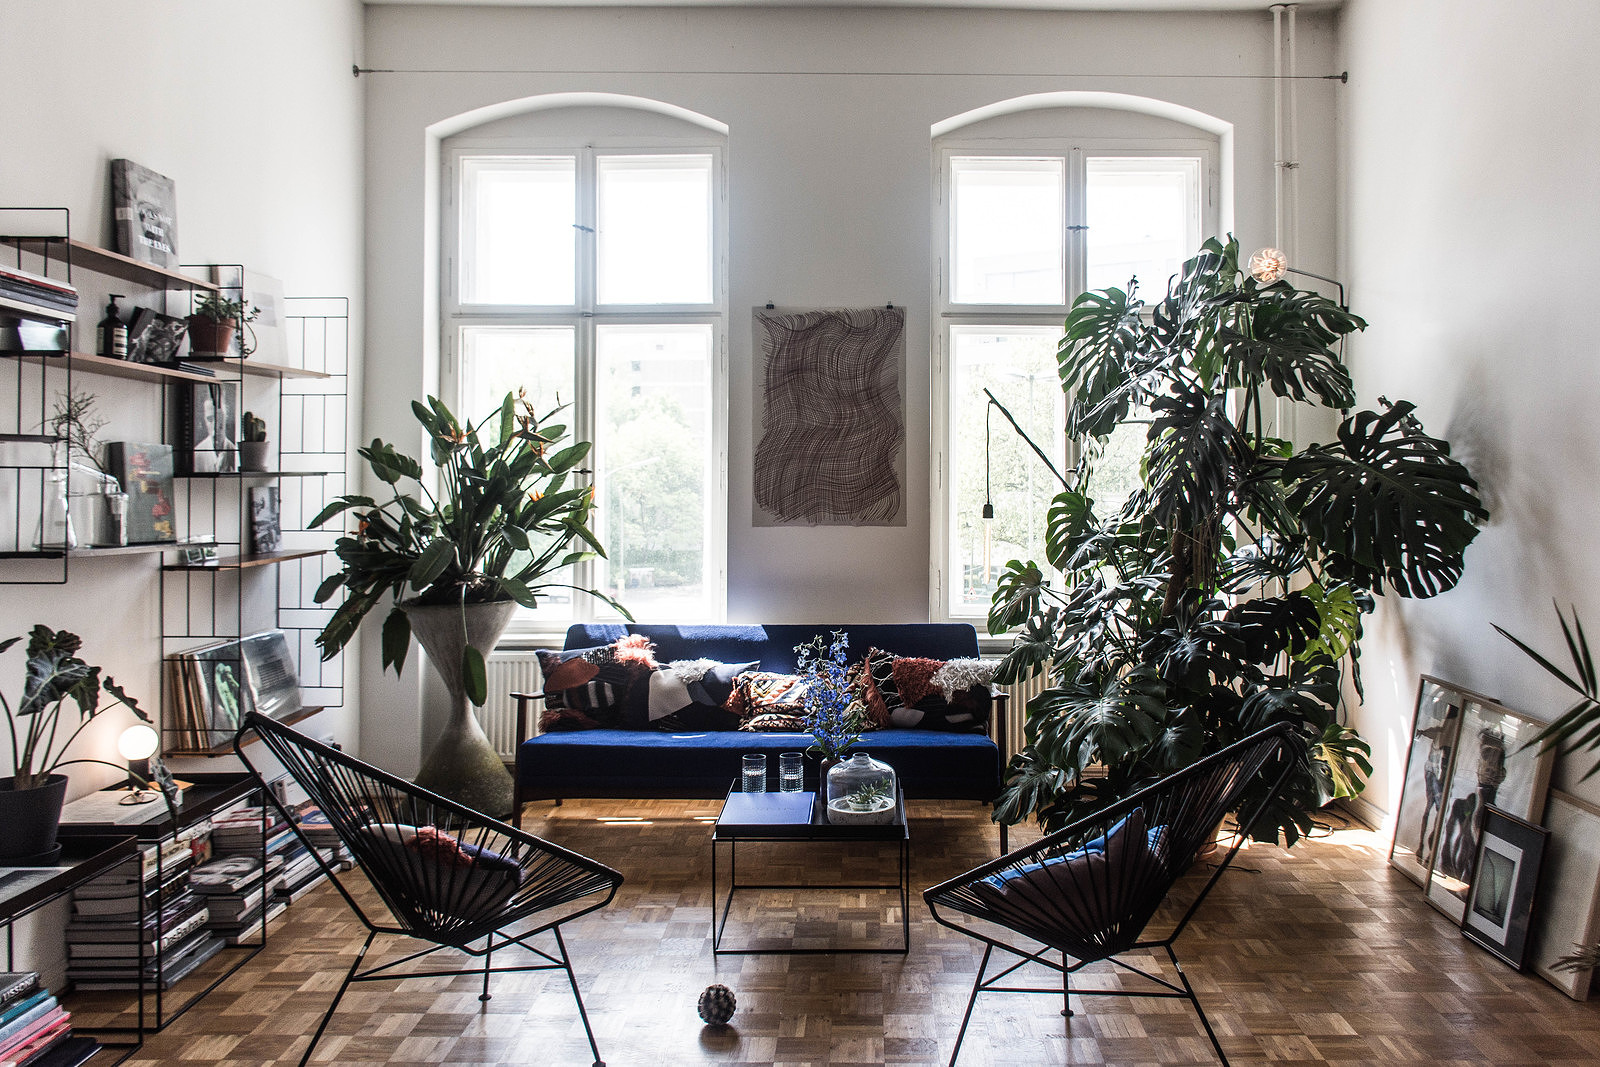 Living room of Tim Labenda in Berlin-Kreuzberg